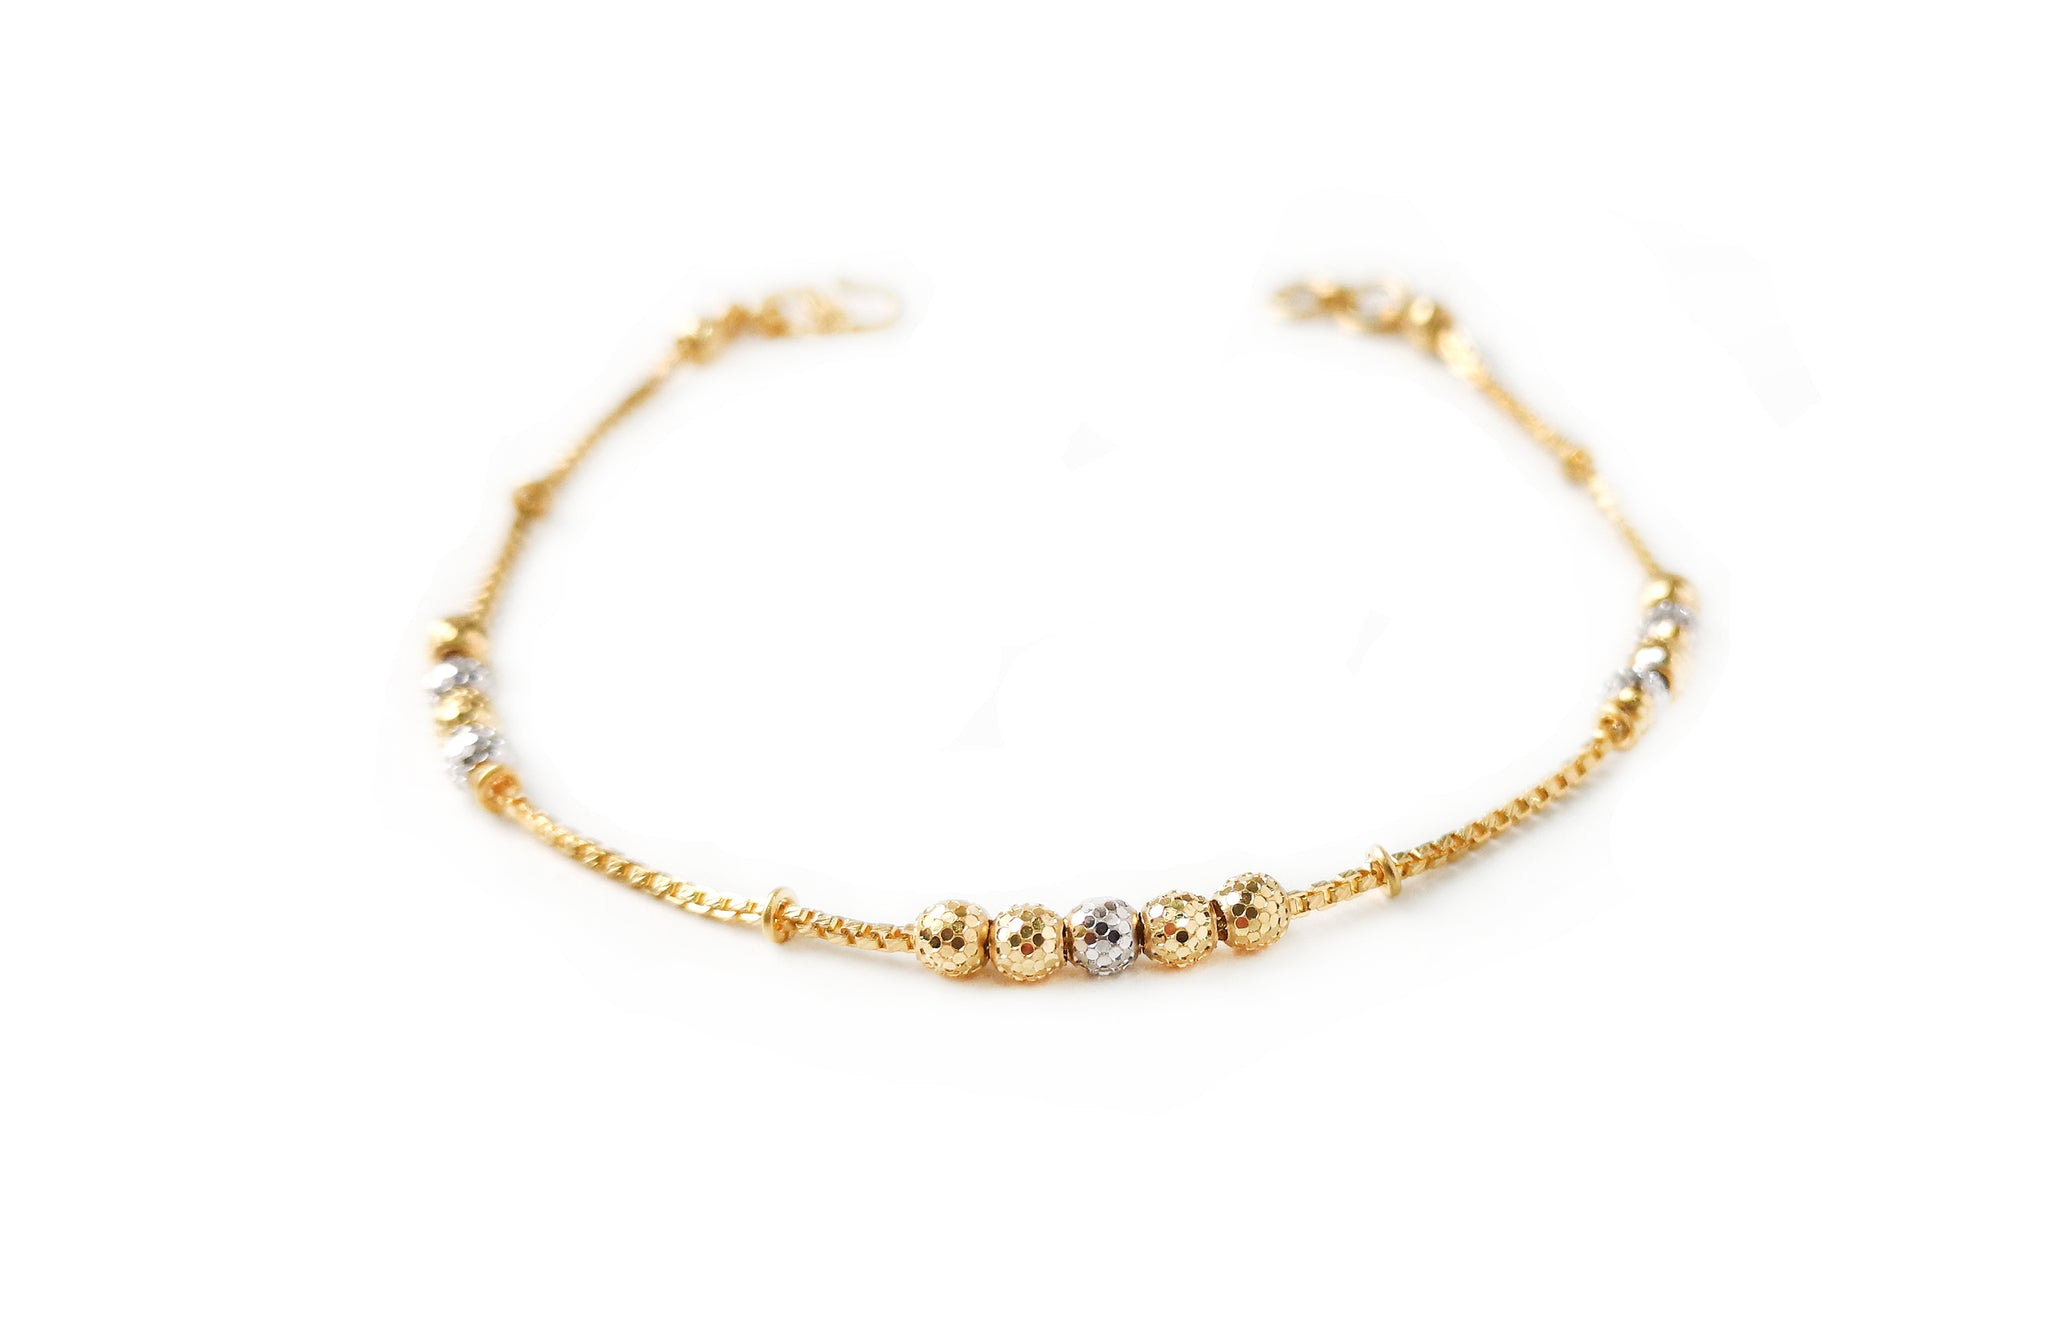 22ct Gold Bracelet with Diamond Cut and Rhodium Design (3.8g) LBR-7662